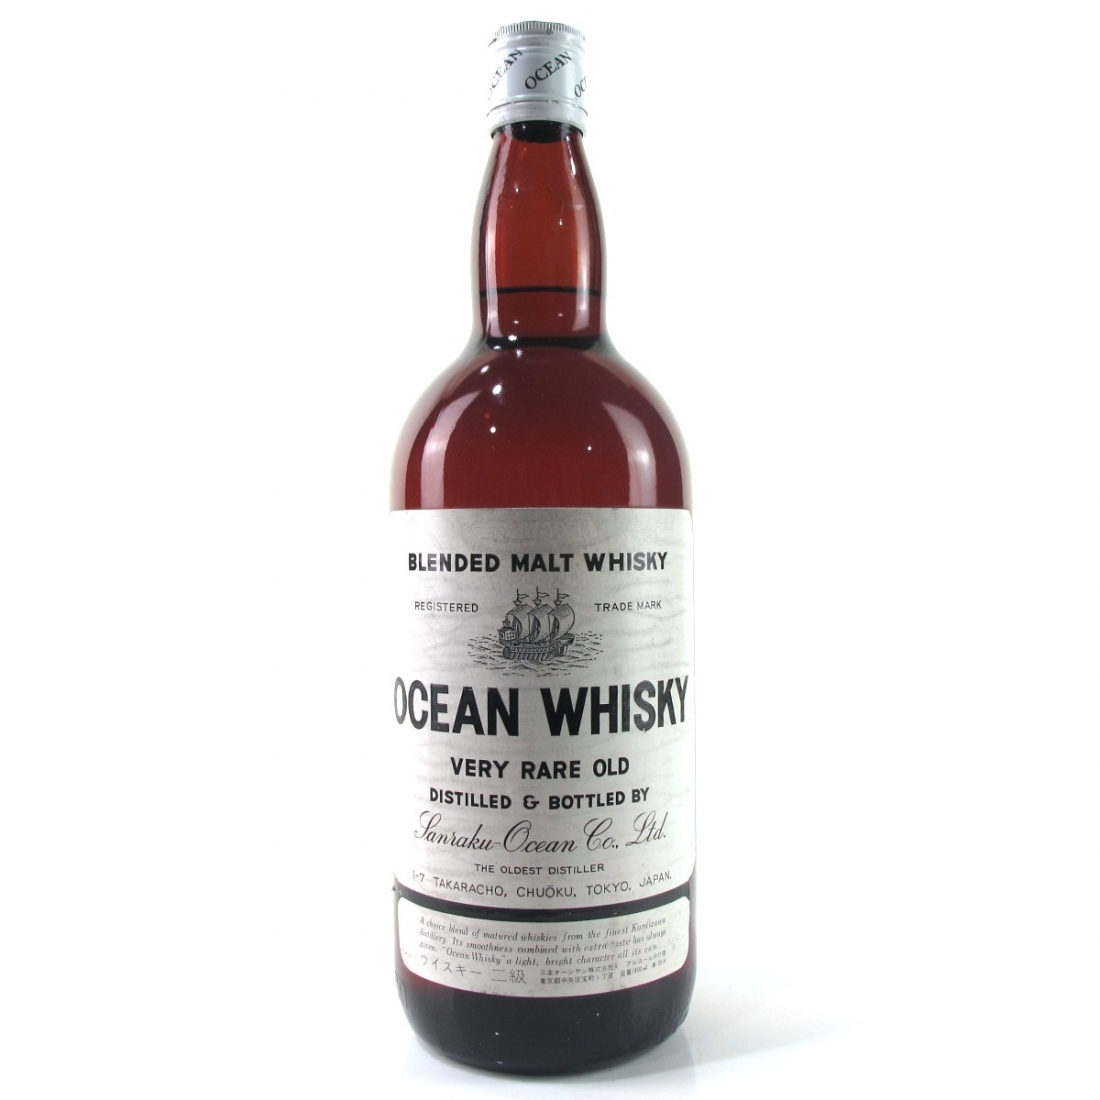 Ocean Whisky Very Rare Old Blend 1.8 Litre / Karuizawa